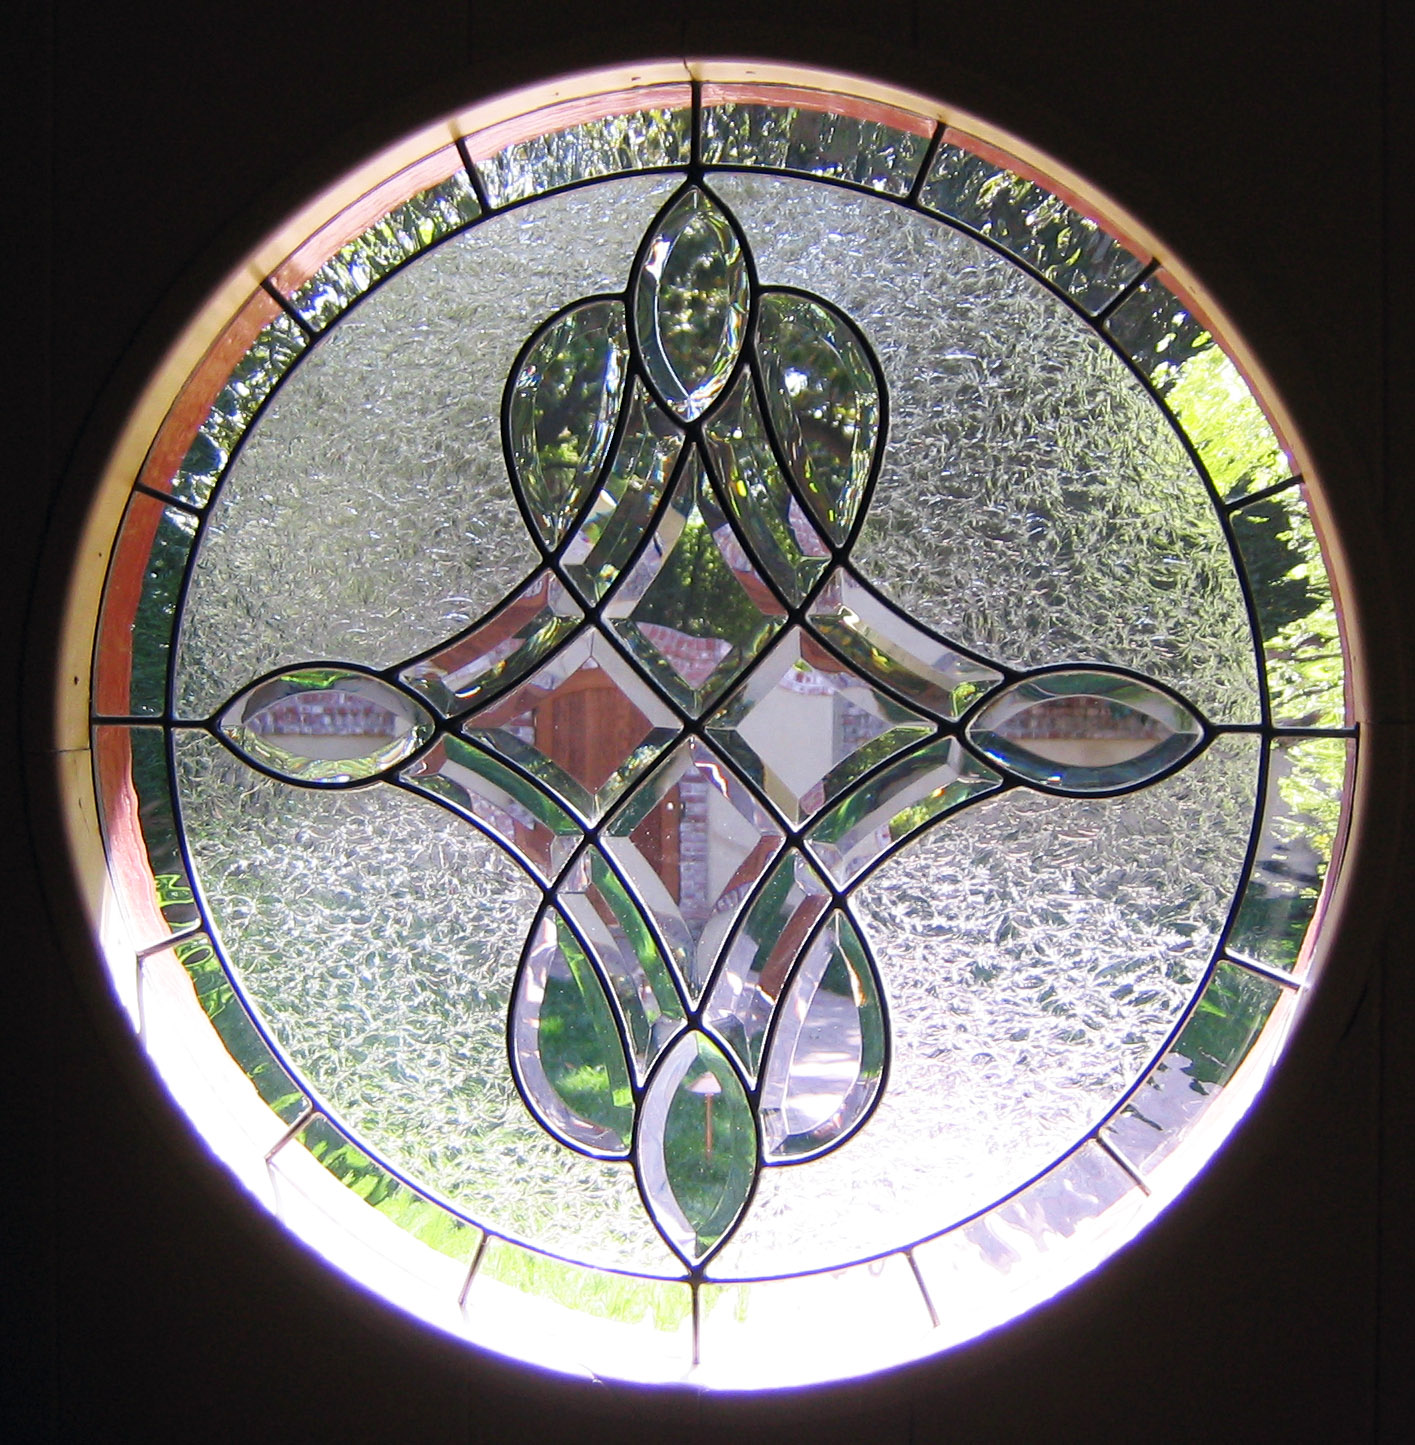 bevel cluster glue chip glass cicrcle round beveled leaded glass stained glass window palo alto atherton california san francisco.jpg